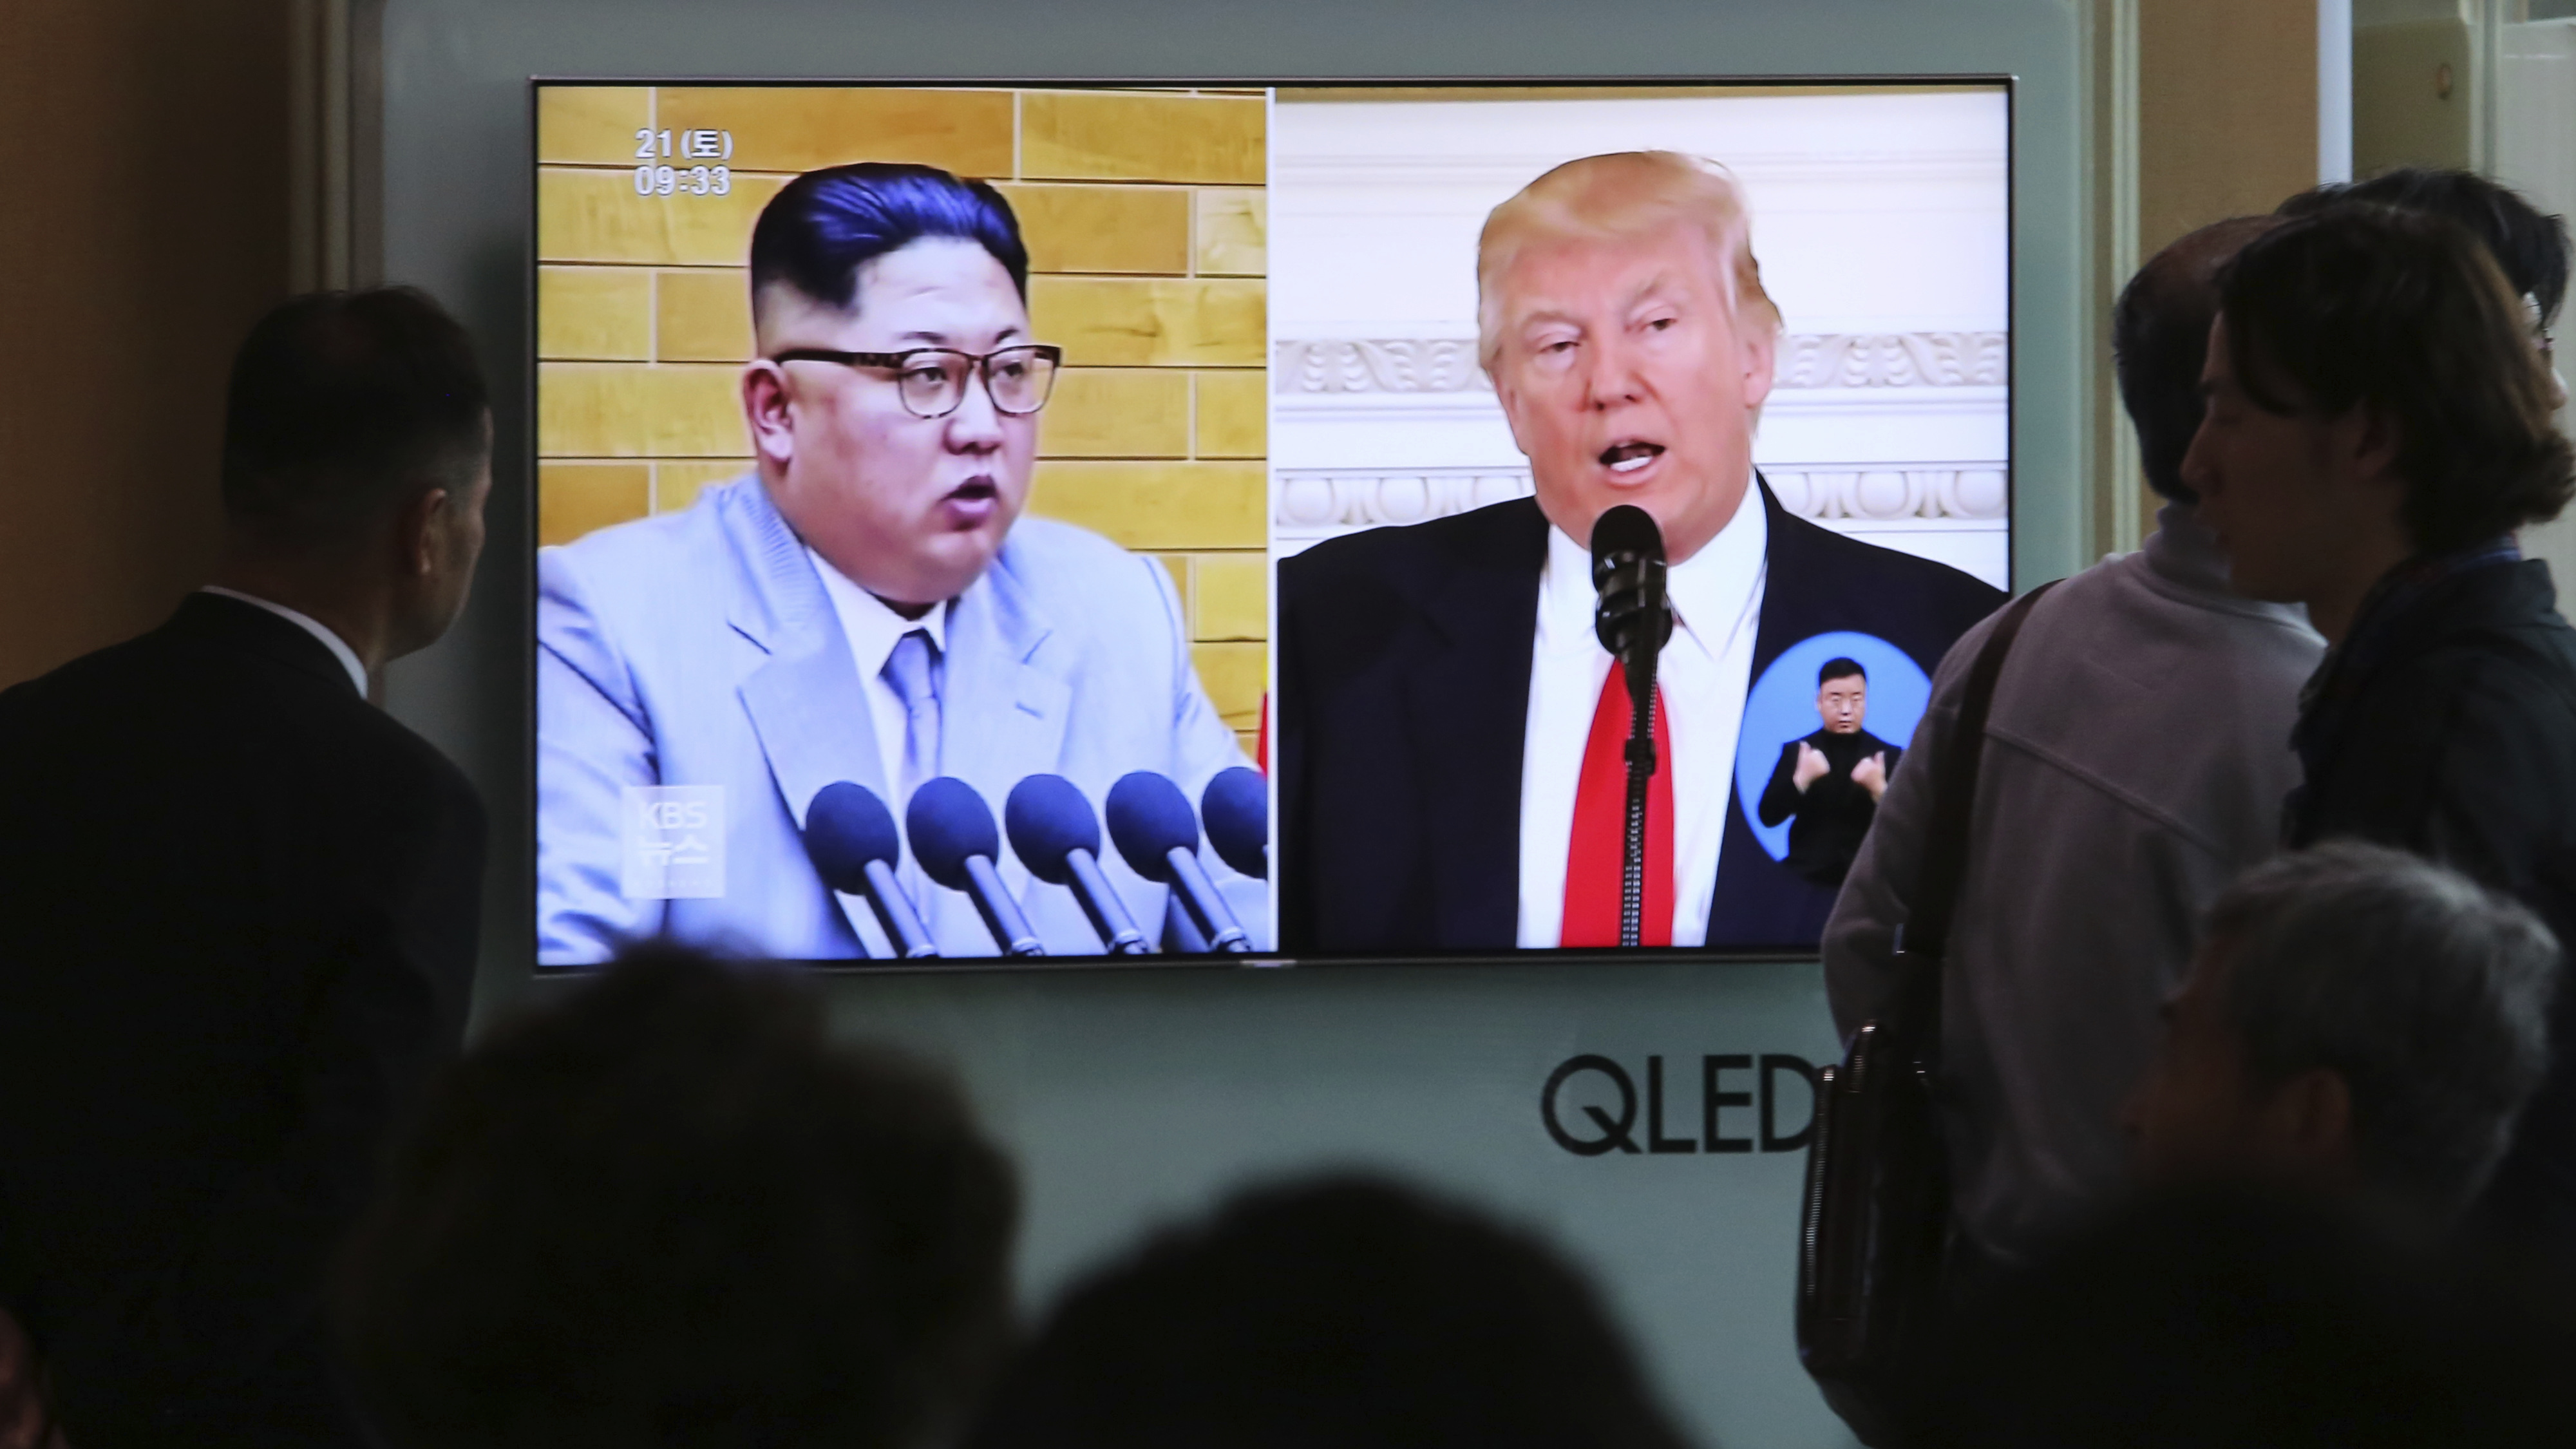 Trump: North Korea's Suspension Of Nuclear Tests Shows 'Progress'